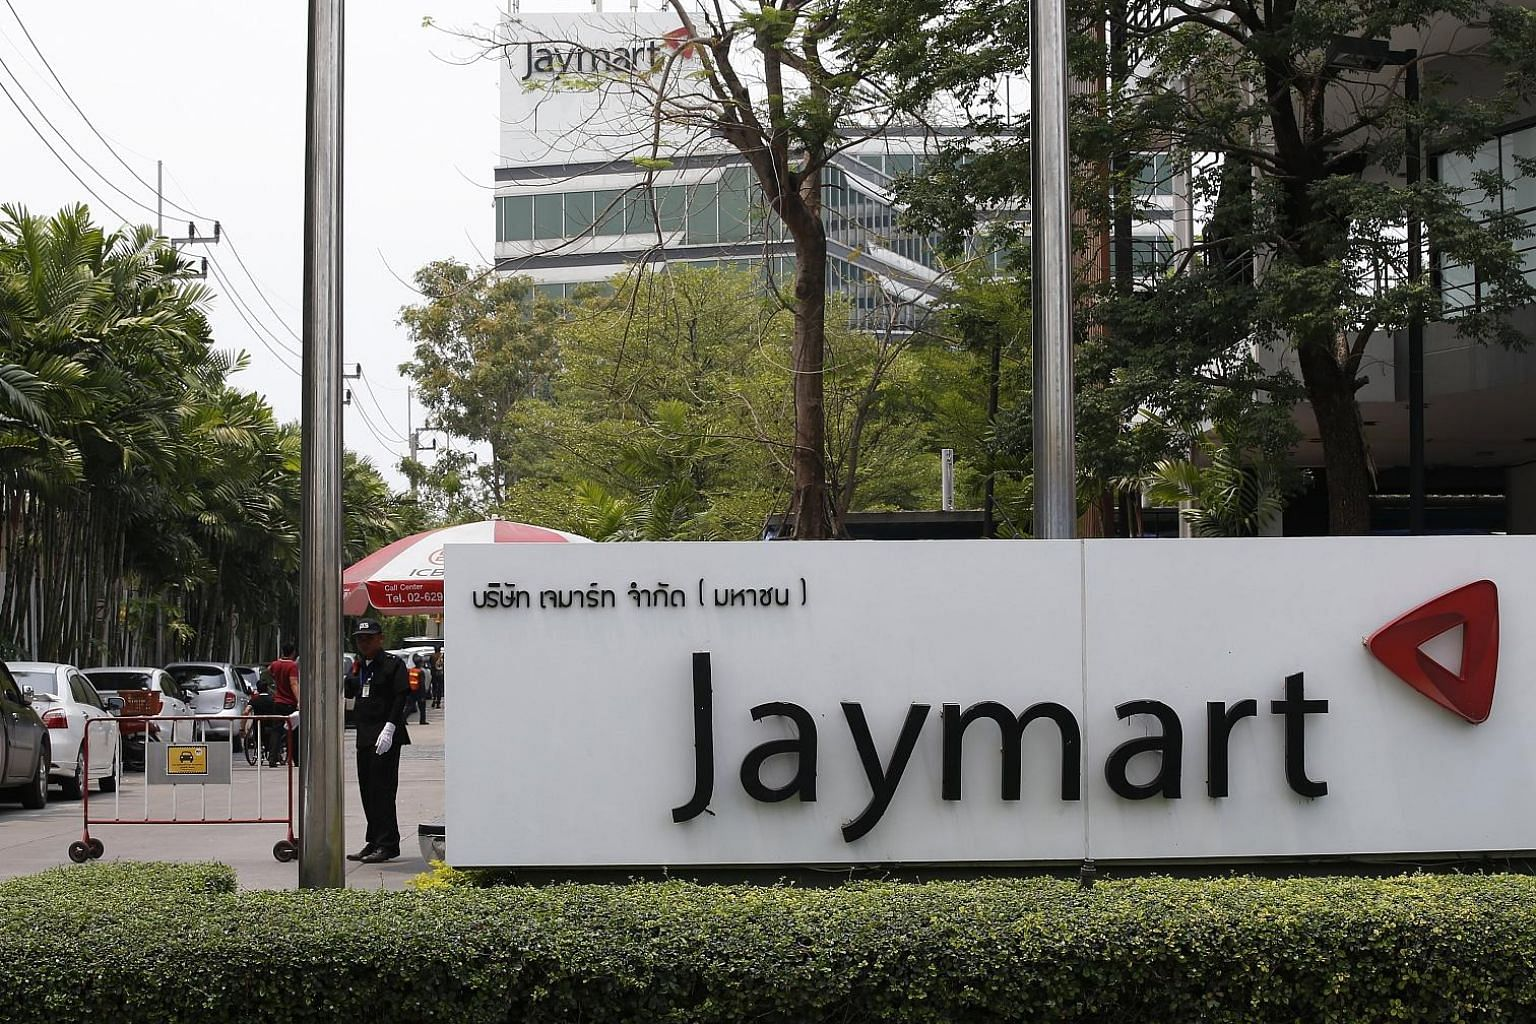 In mid-February, Jaymart's subsidiary, J Ventures, became the first company in Thailand to raise capital by selling digital tokens, JFin coins, on the Thai Digital Asset Exchange.